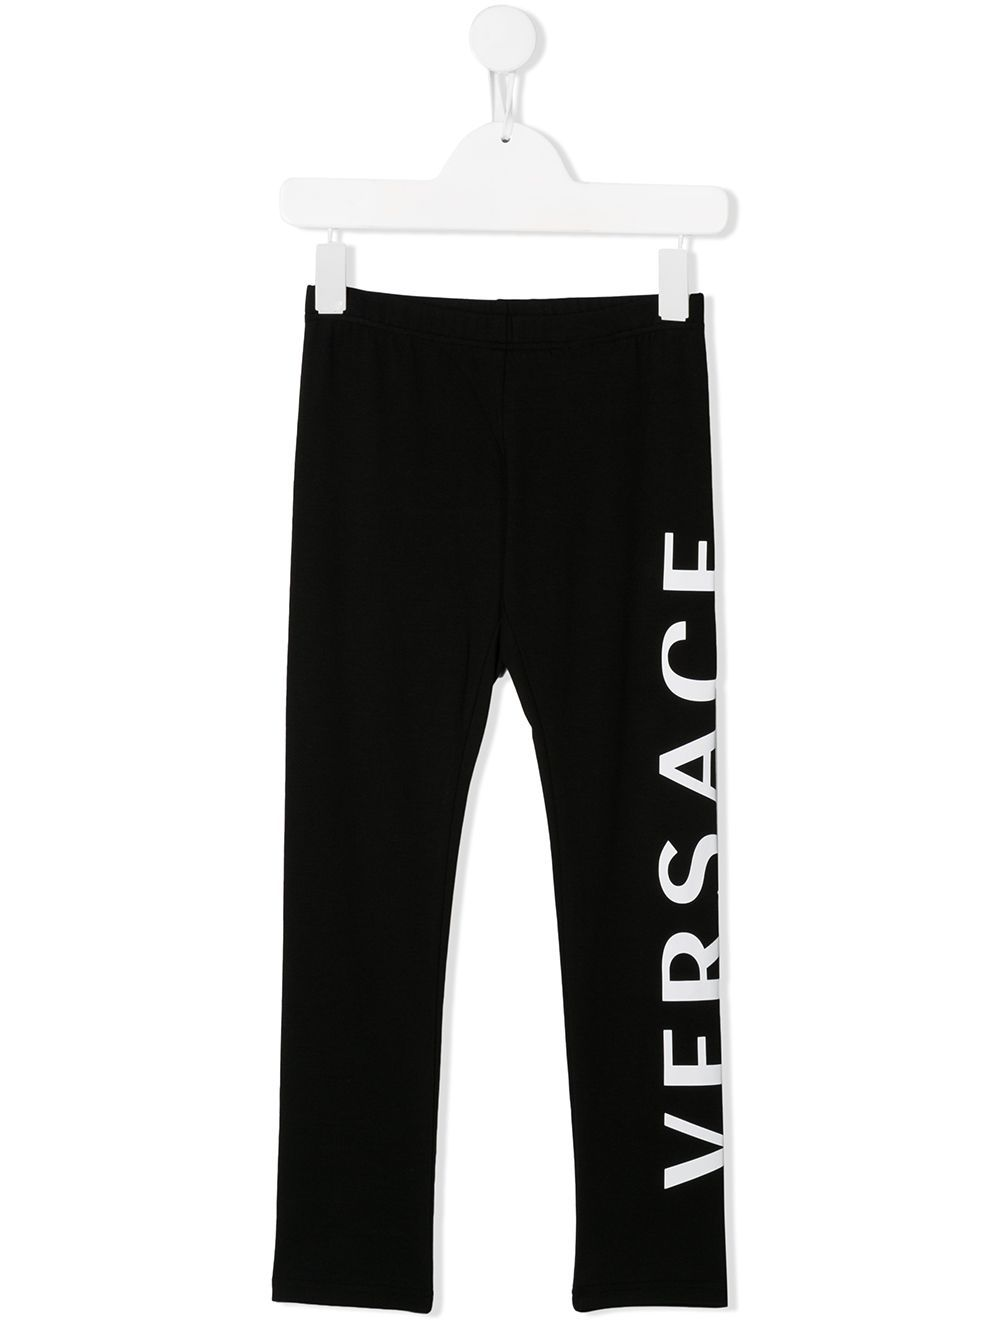 VERSACE KIDS logo printed leggings black - Maison De Fashion